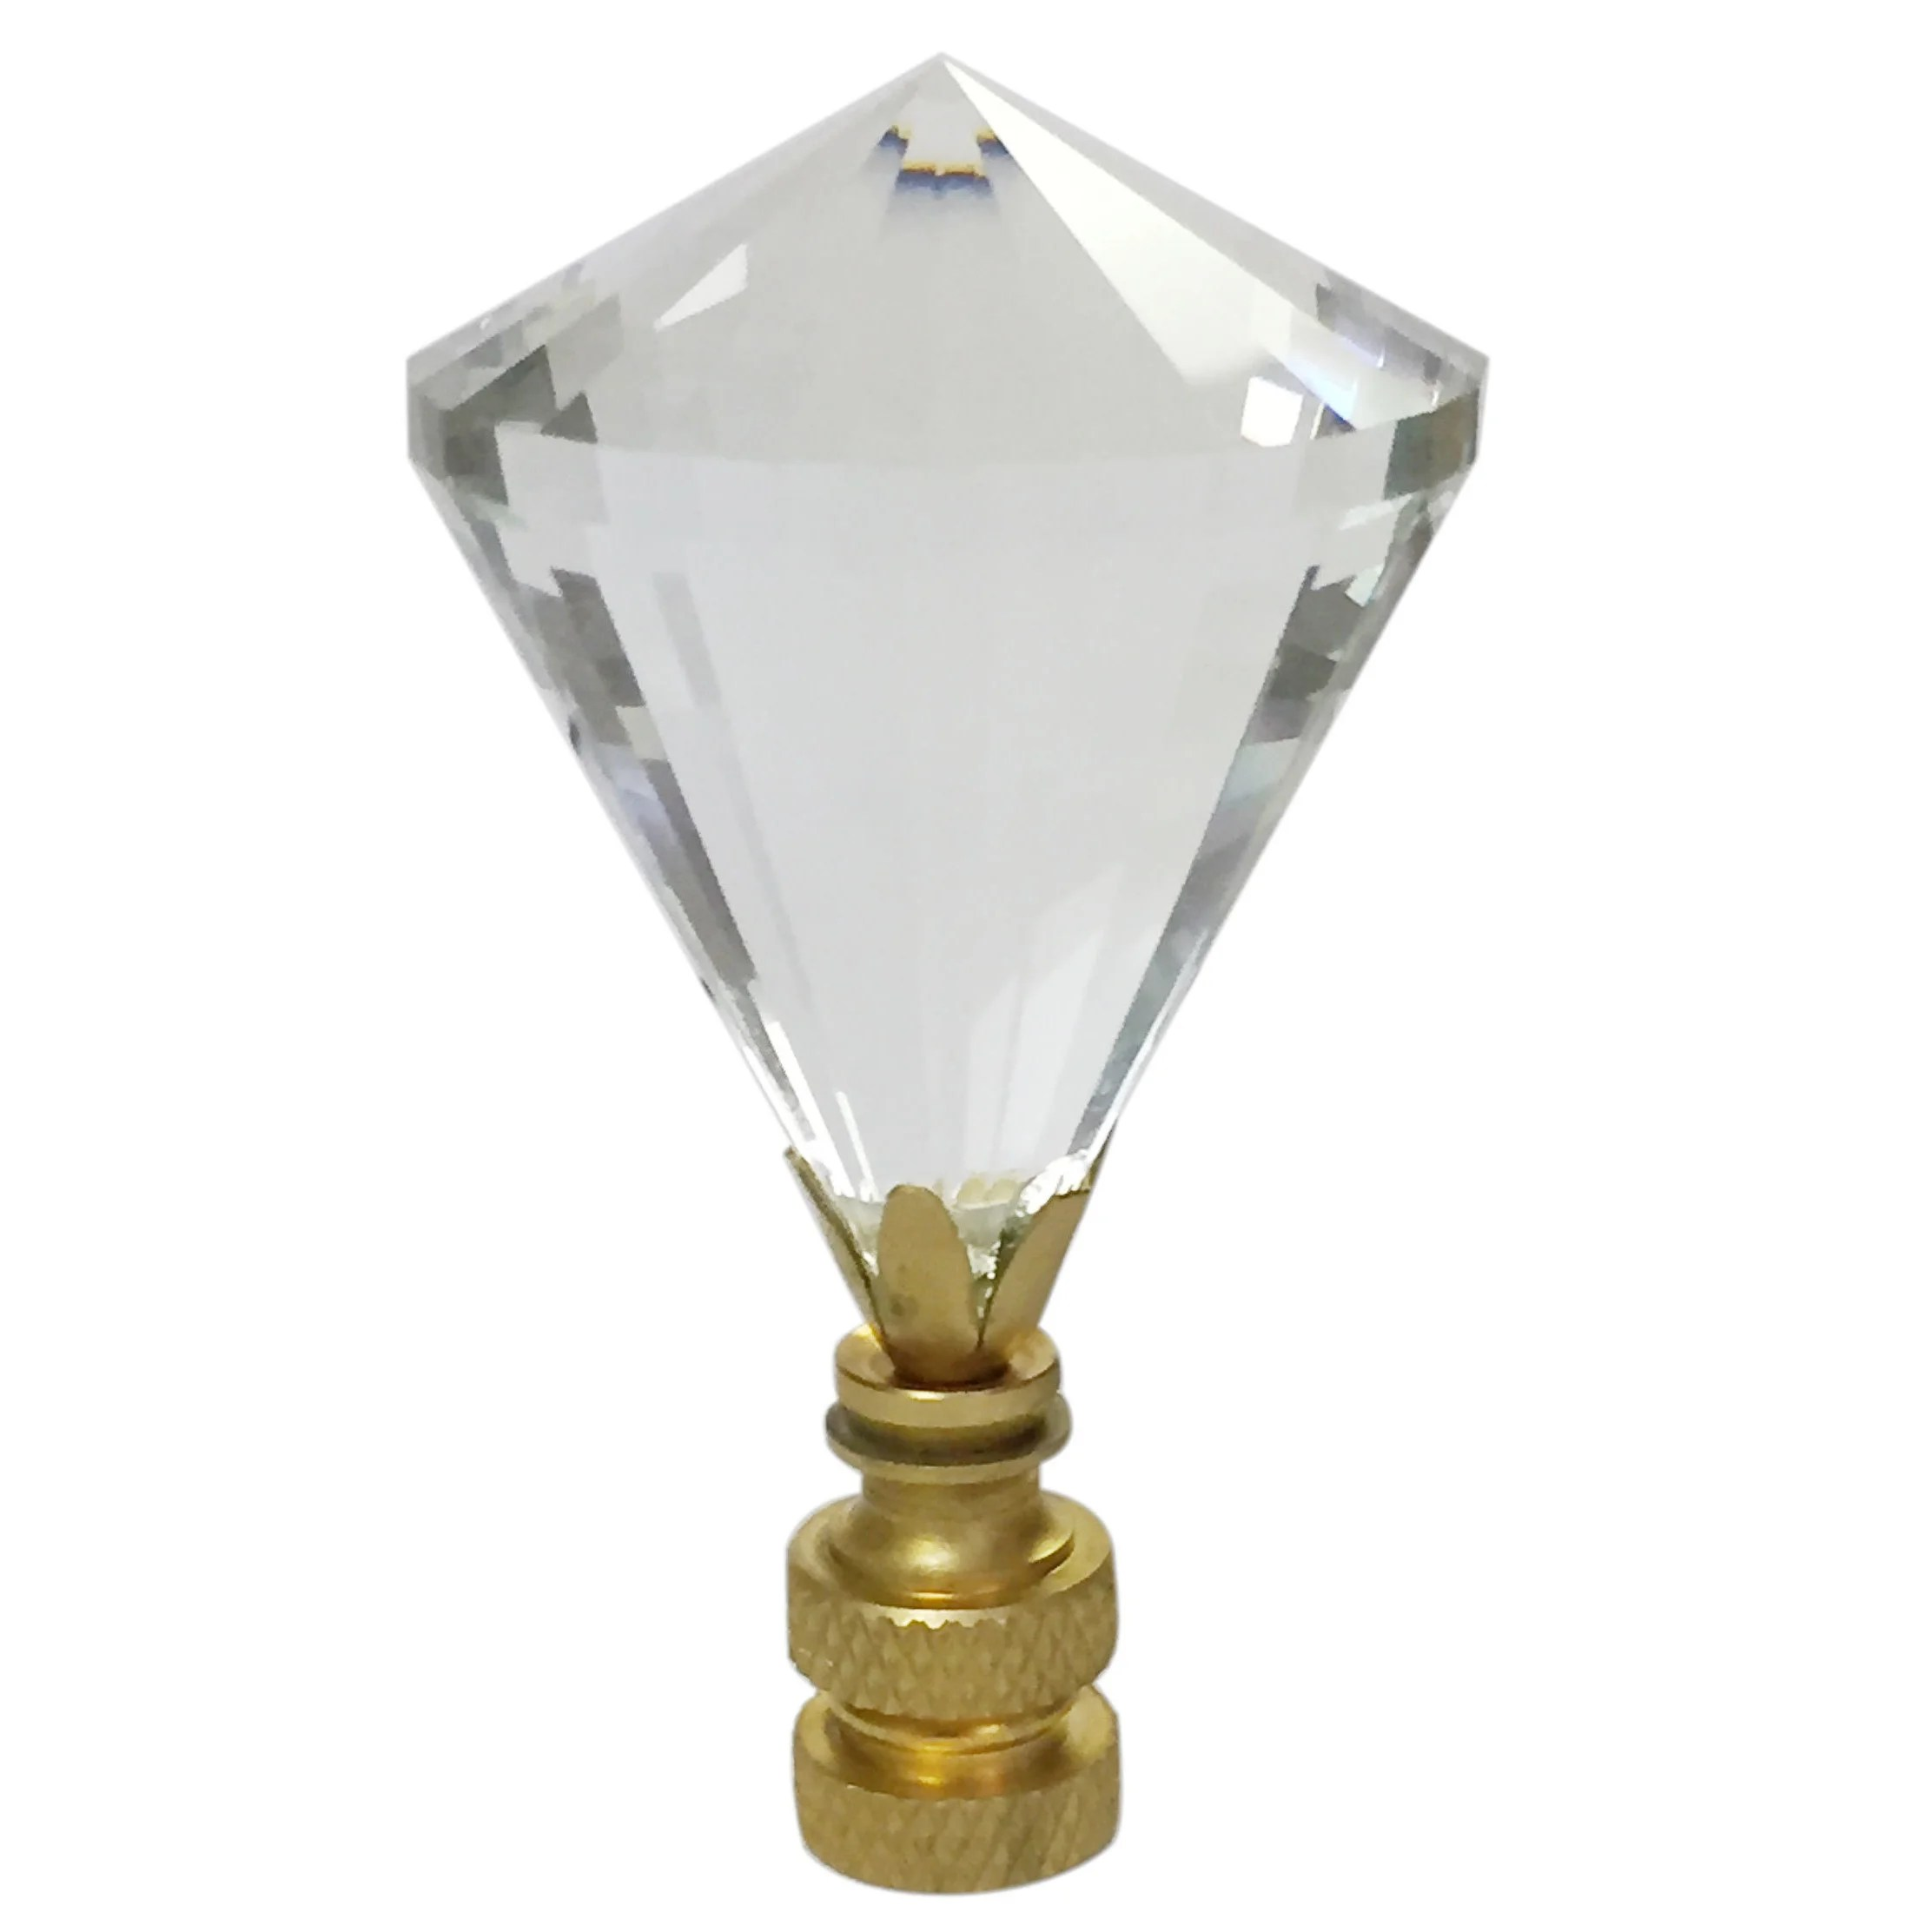 Crystal Lamp Royal Designs Extra Large Diamond Gem Cut Clear K9 Crystal Lamp Finial For Lamp Shade With Polished